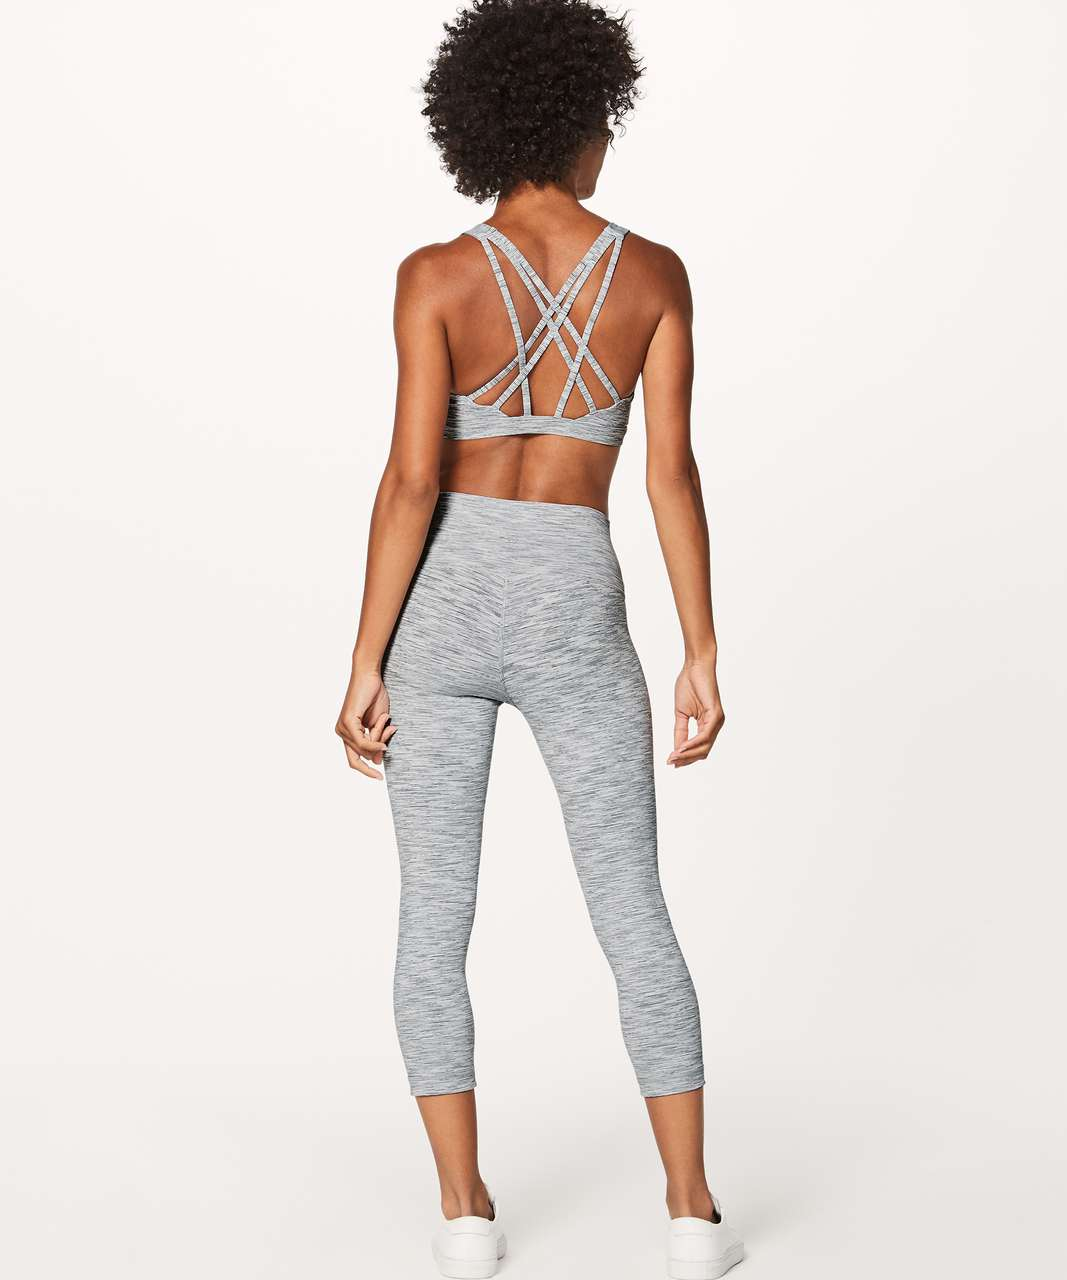 Lululemon Wunder Under Crop (Hi-Rise) (Luxtreme) - Wee Are From Space Ice Grey Alpine White